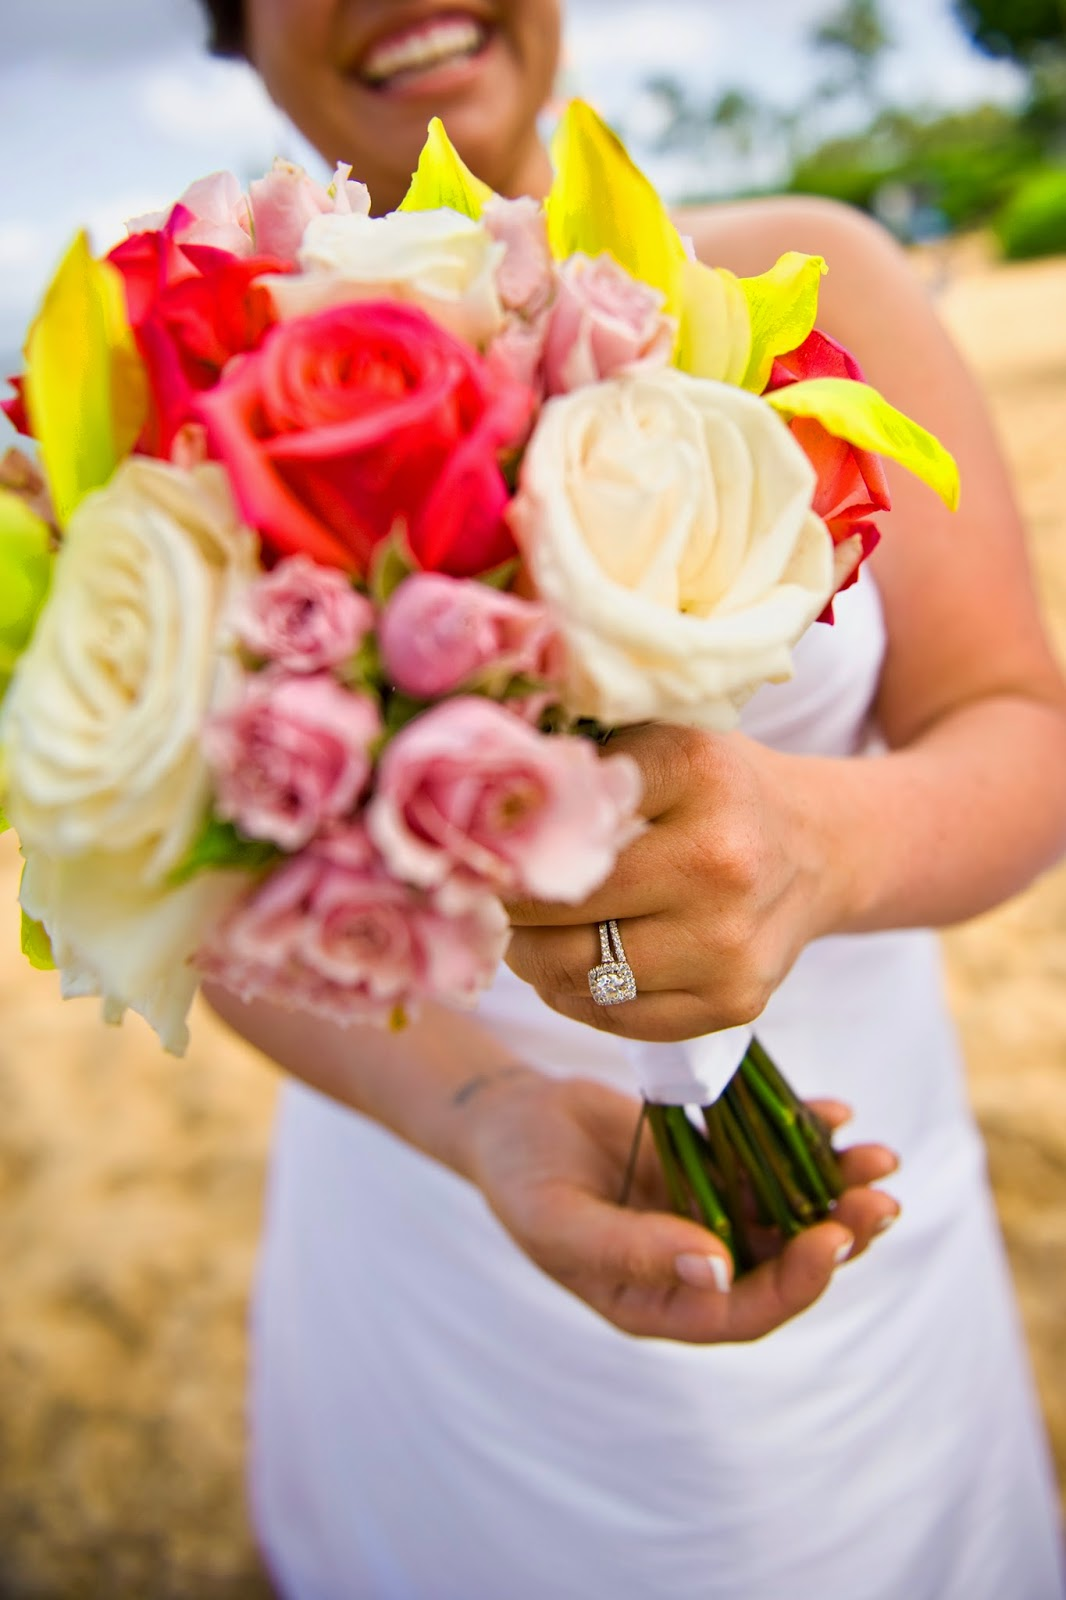 maui bouquet, maui gay bride, maui gay weddings, maui weddings